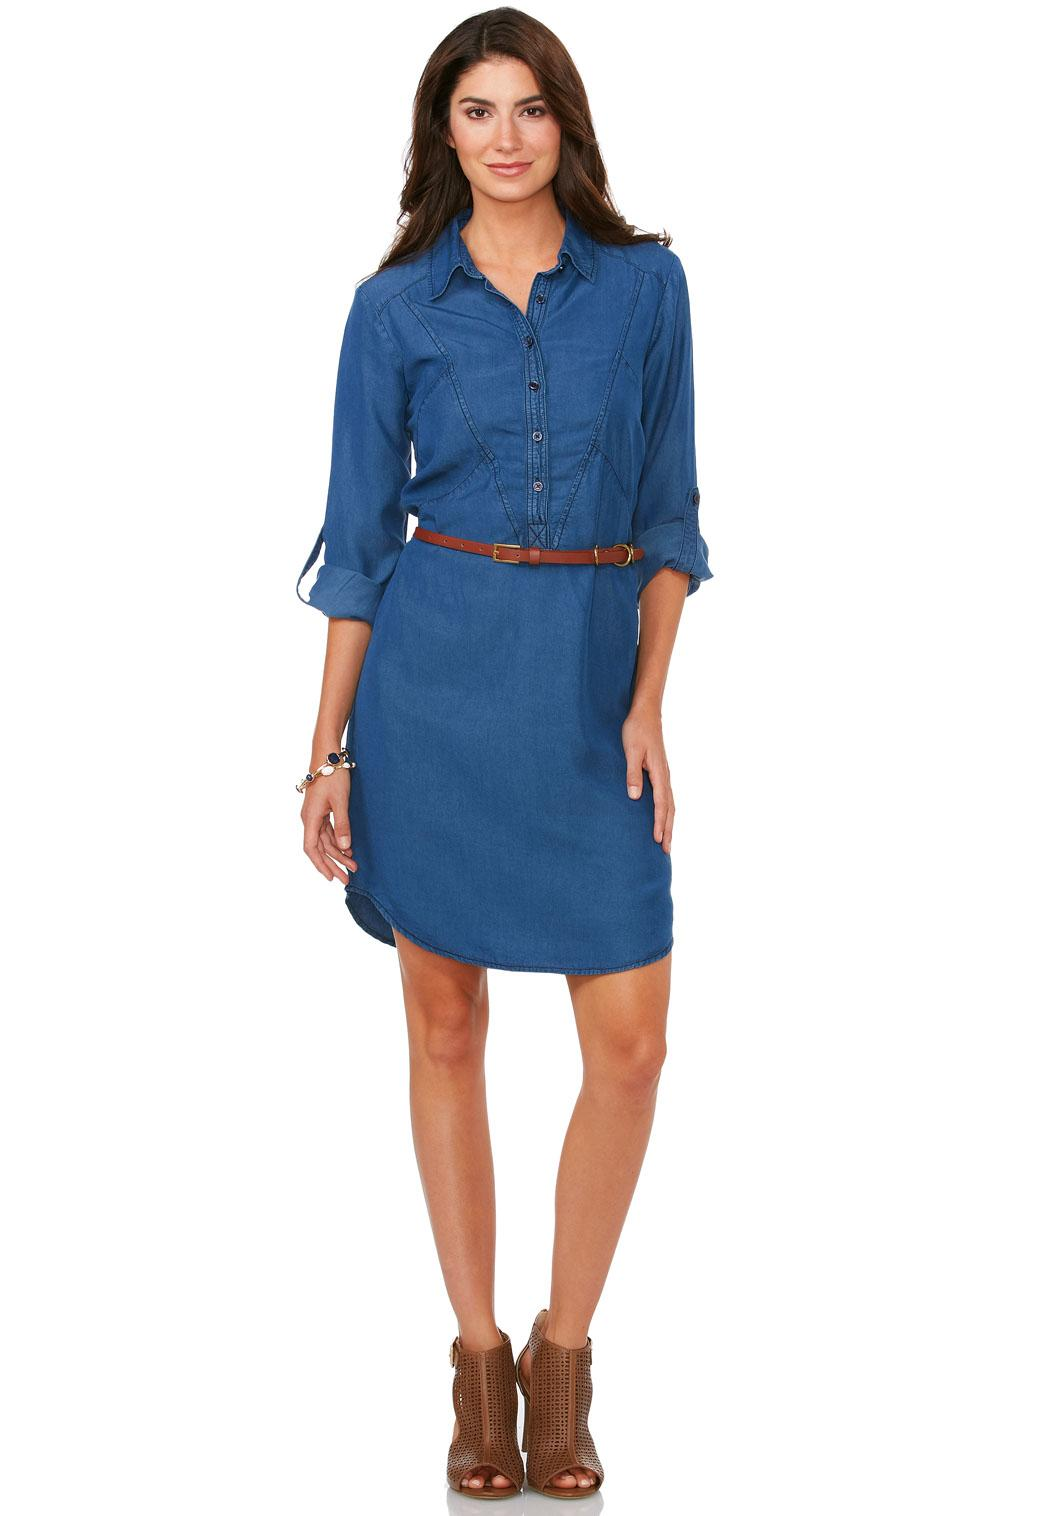 Belted chambray shirt dress for Belted chambray shirt dress